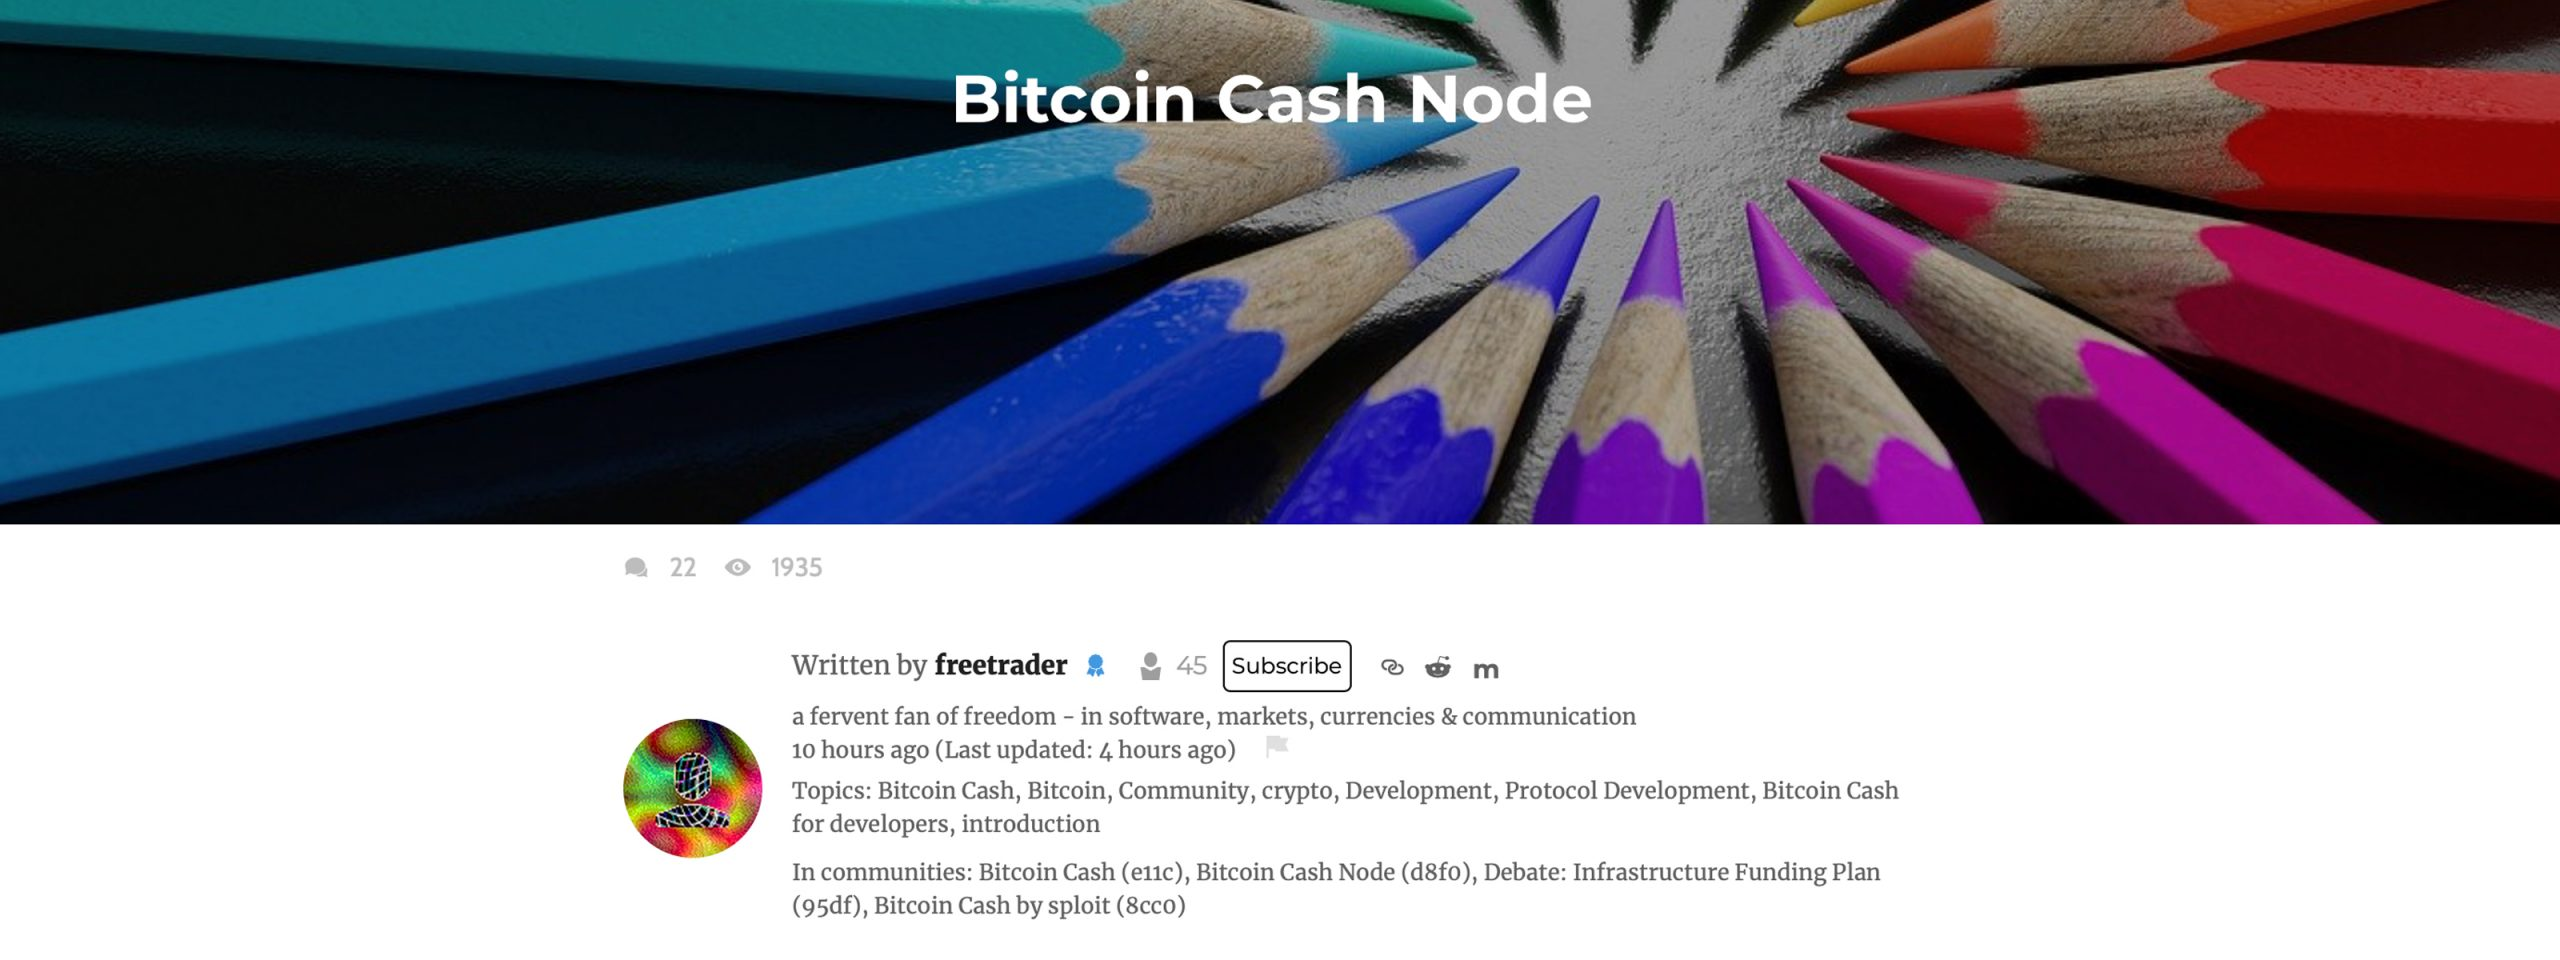 BCH Funding Debate: Developers Plan to Launch IFP-Free Version of Bitcoin ABC